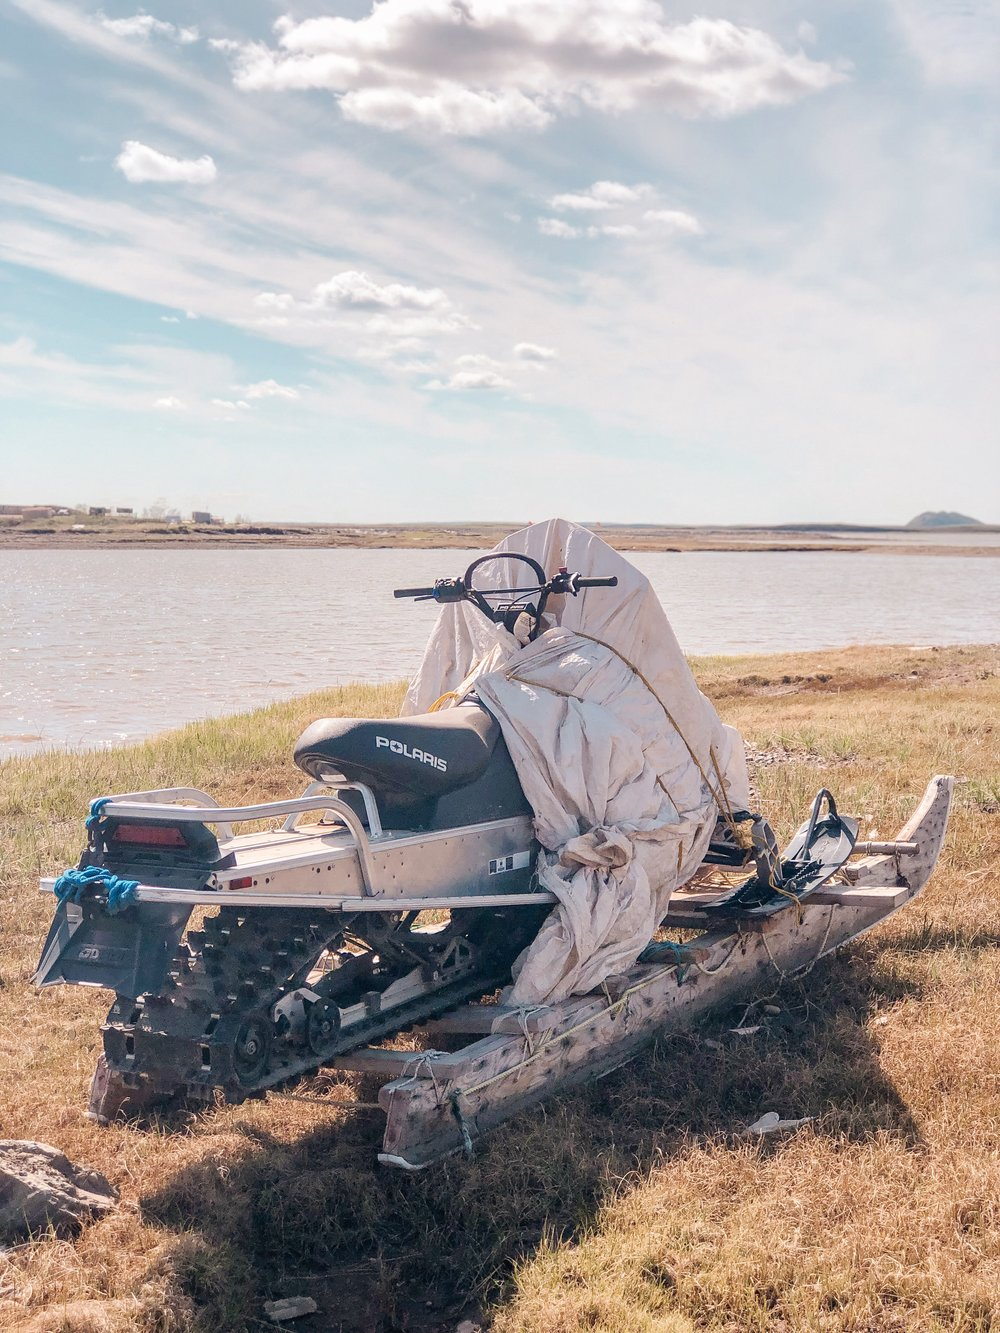 An abandoned snowmobile during summer in Canada's arctic